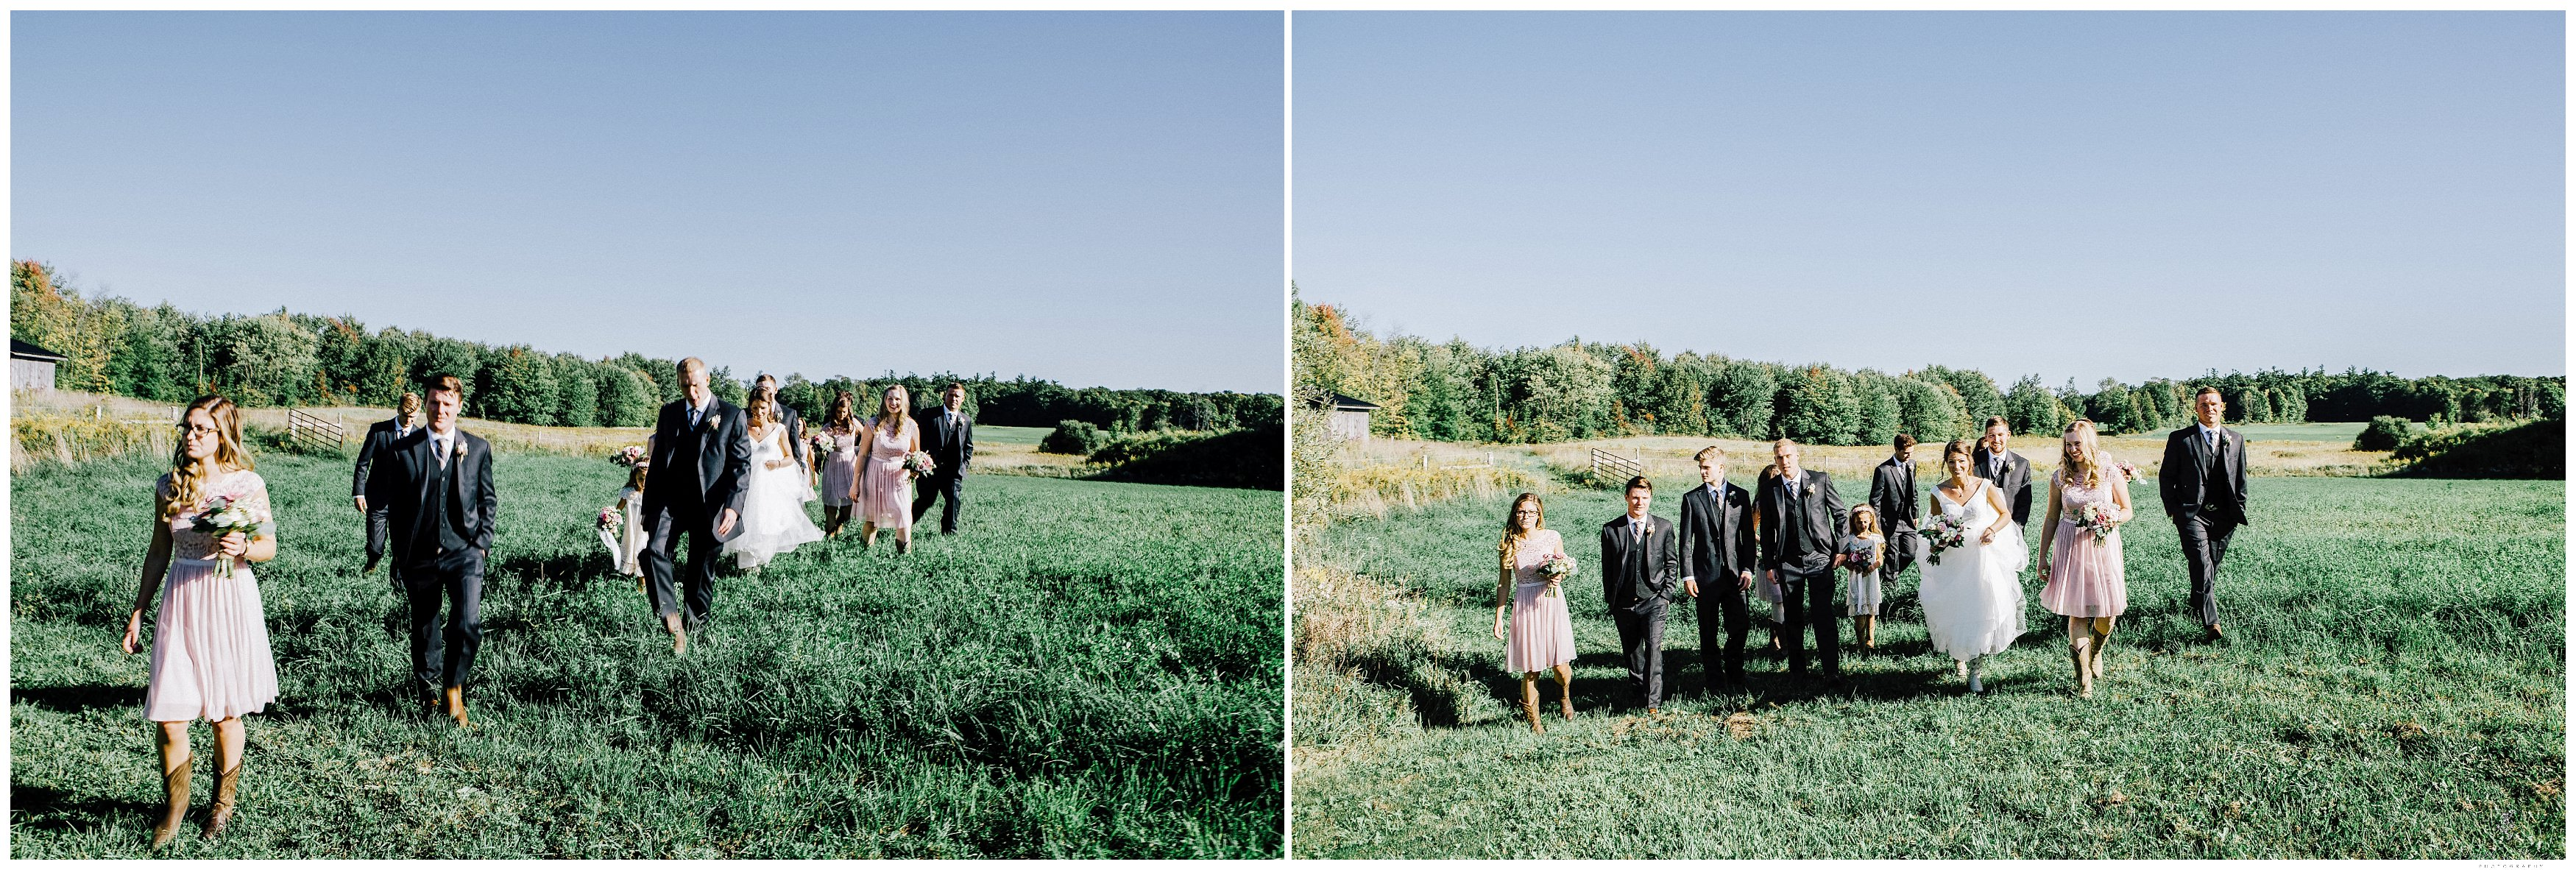 Ontario Barn Wedding_2187.jpg